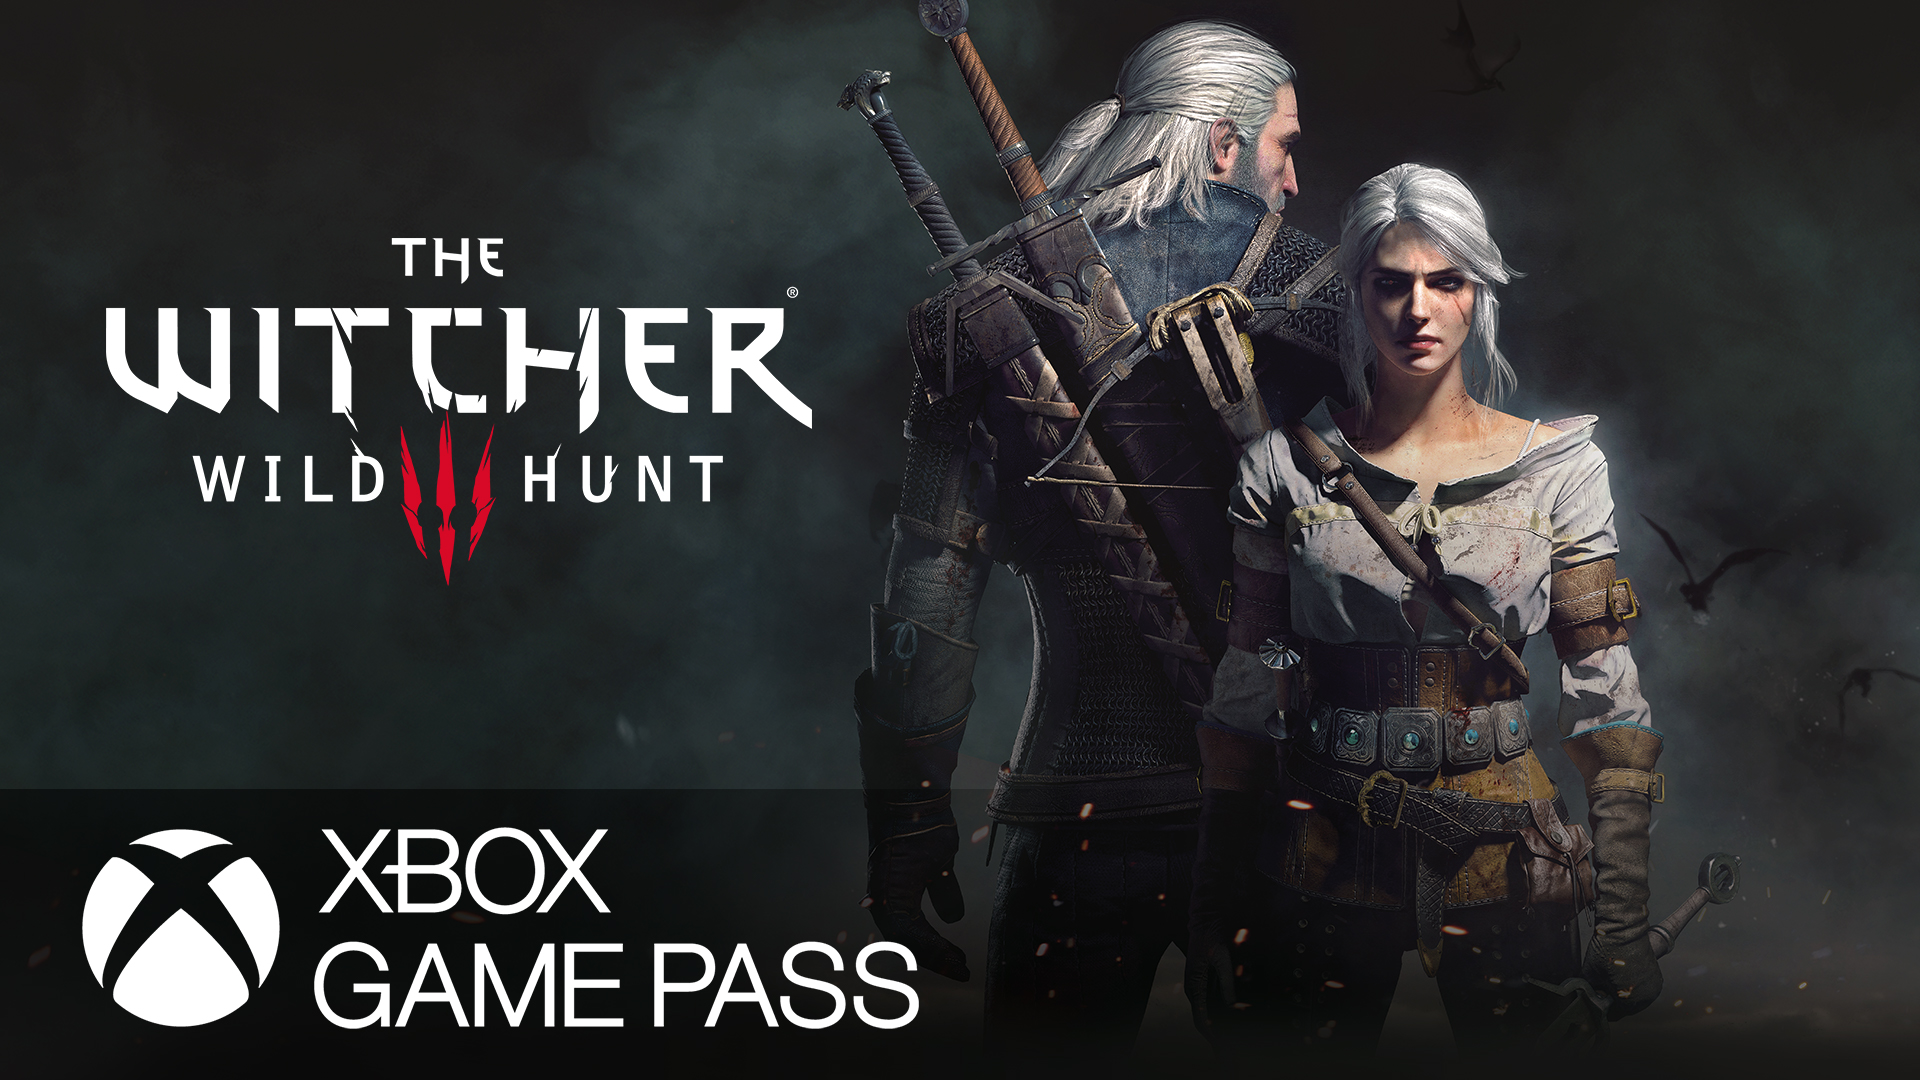 The Witcher 3: Wild Hunt - CD PROJEKT